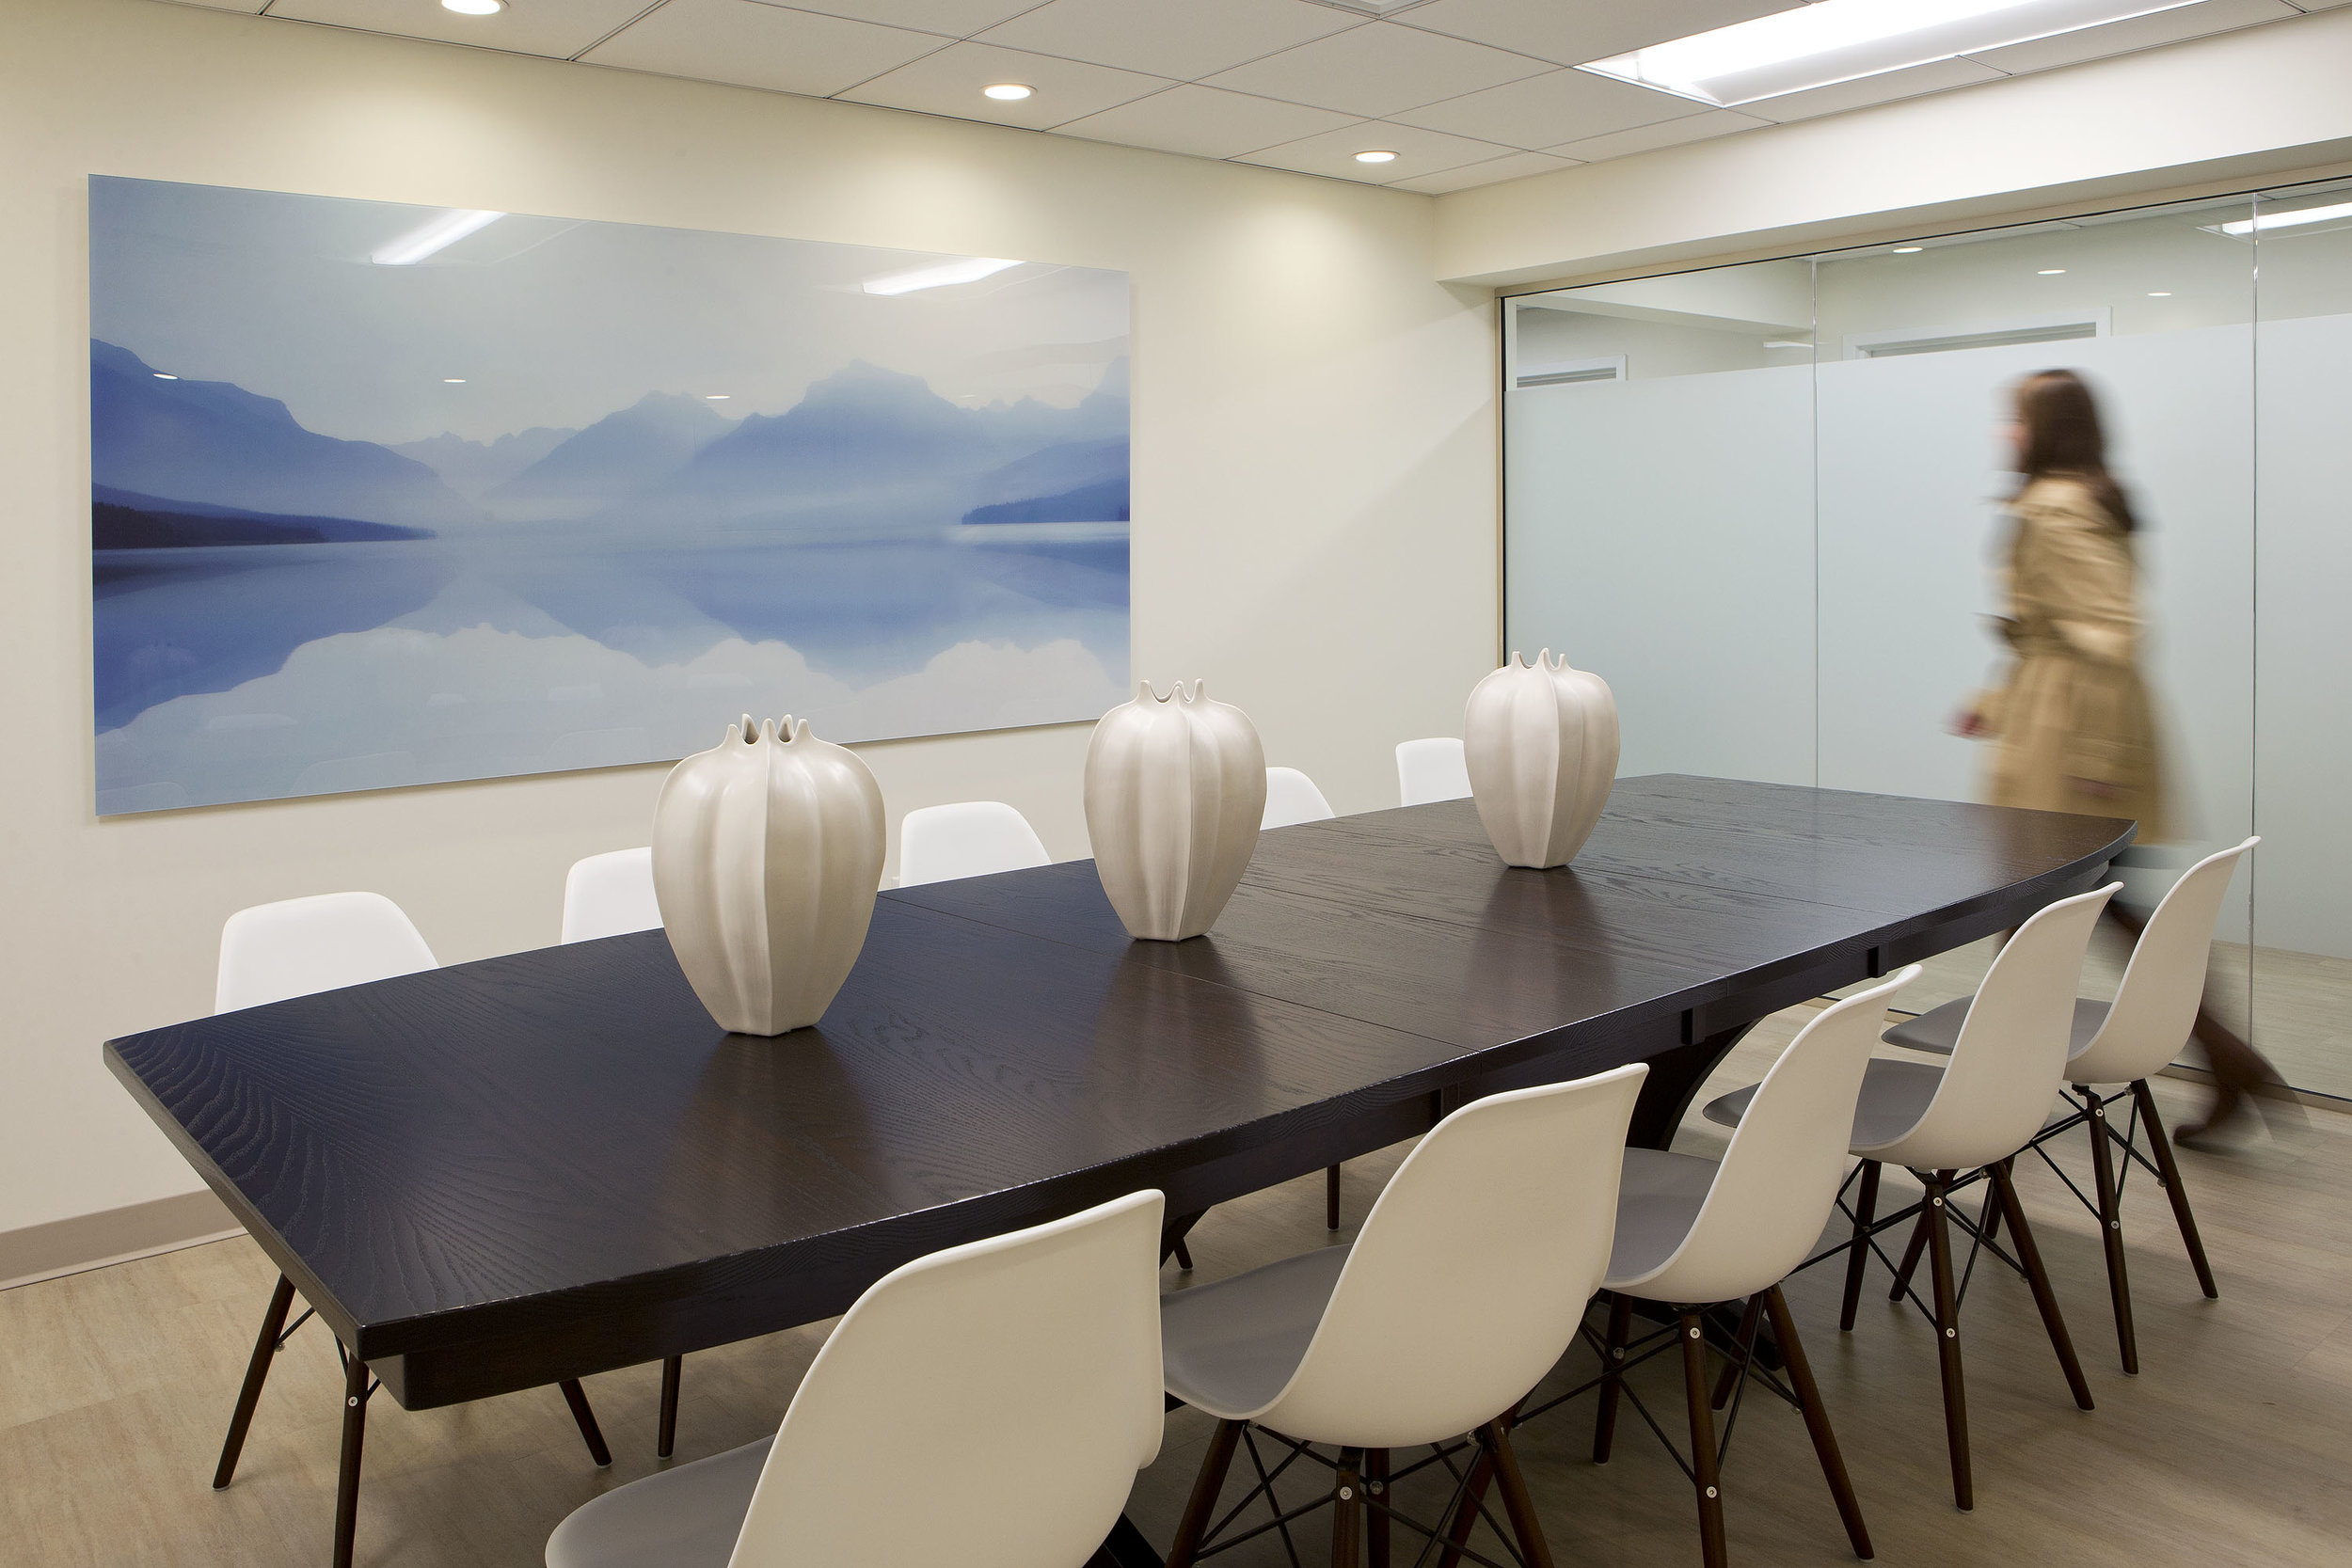 The conference room provides a serene room for meetings with the American made hardwood table comfortably seating up to ten people.